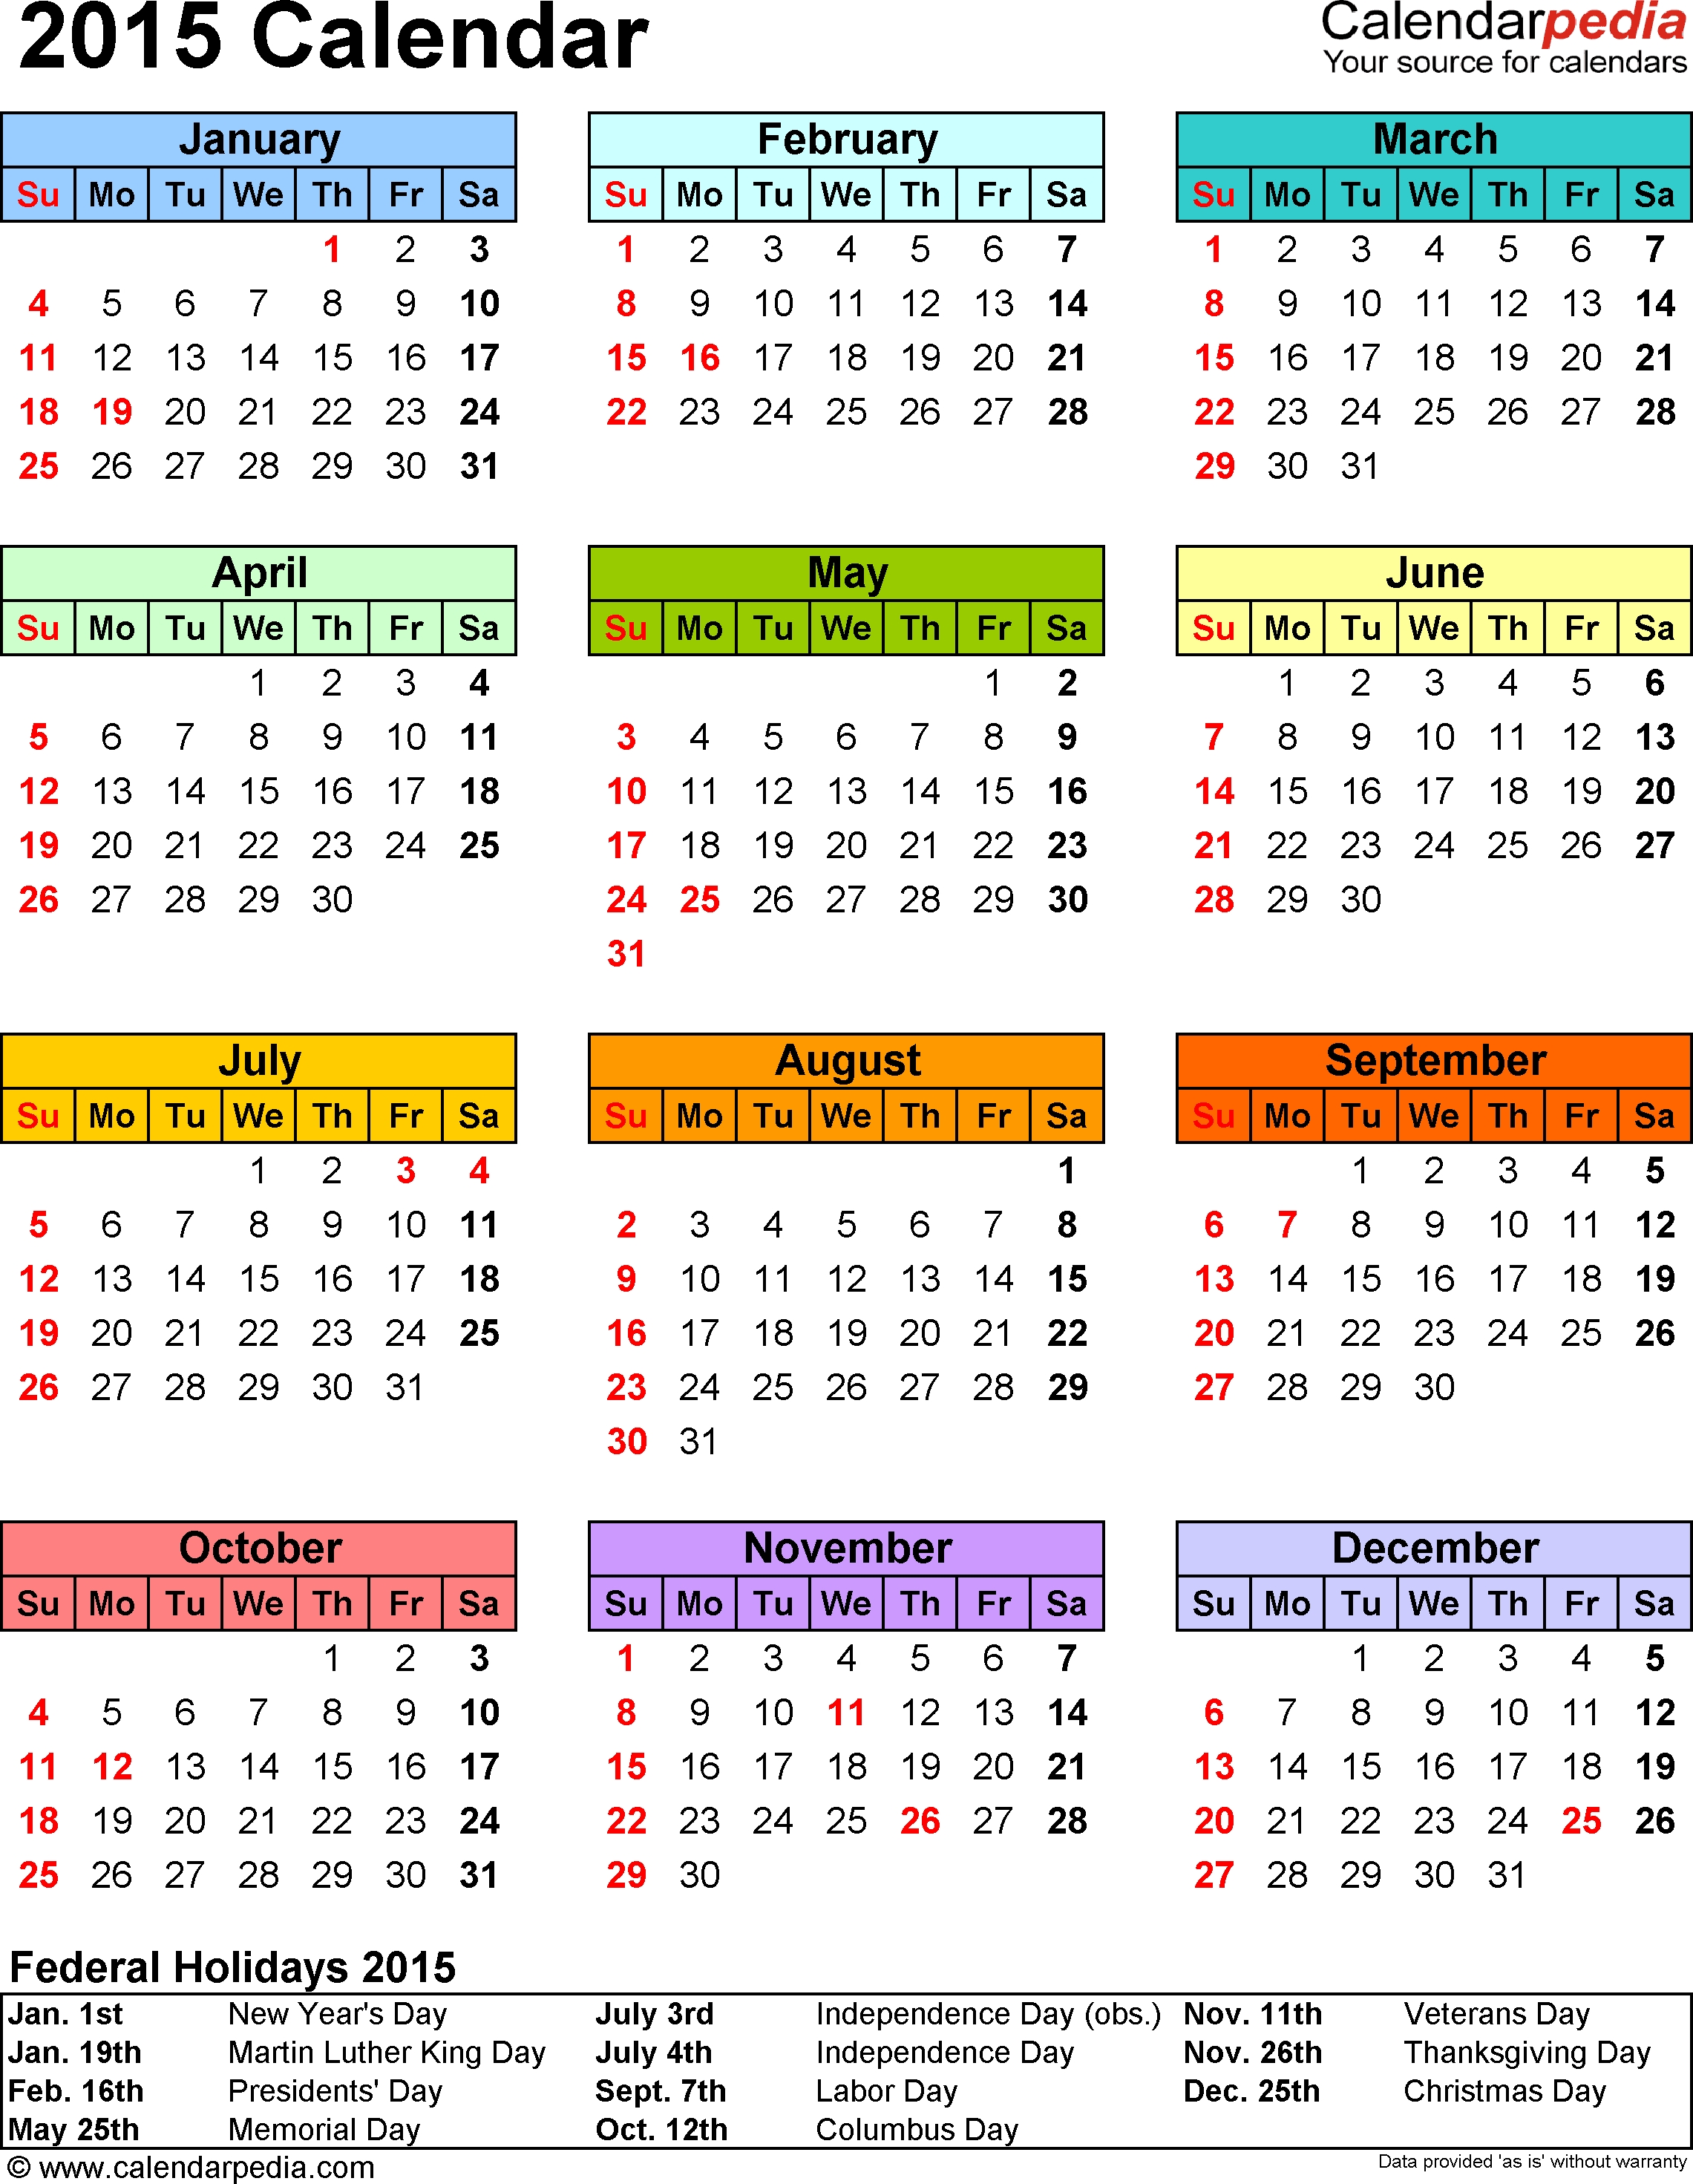 2015 Calendar Pdf - 16 Free Printable Calendar Templates For Pdf intended for Downloadable Employee Vacation Calendar 2015